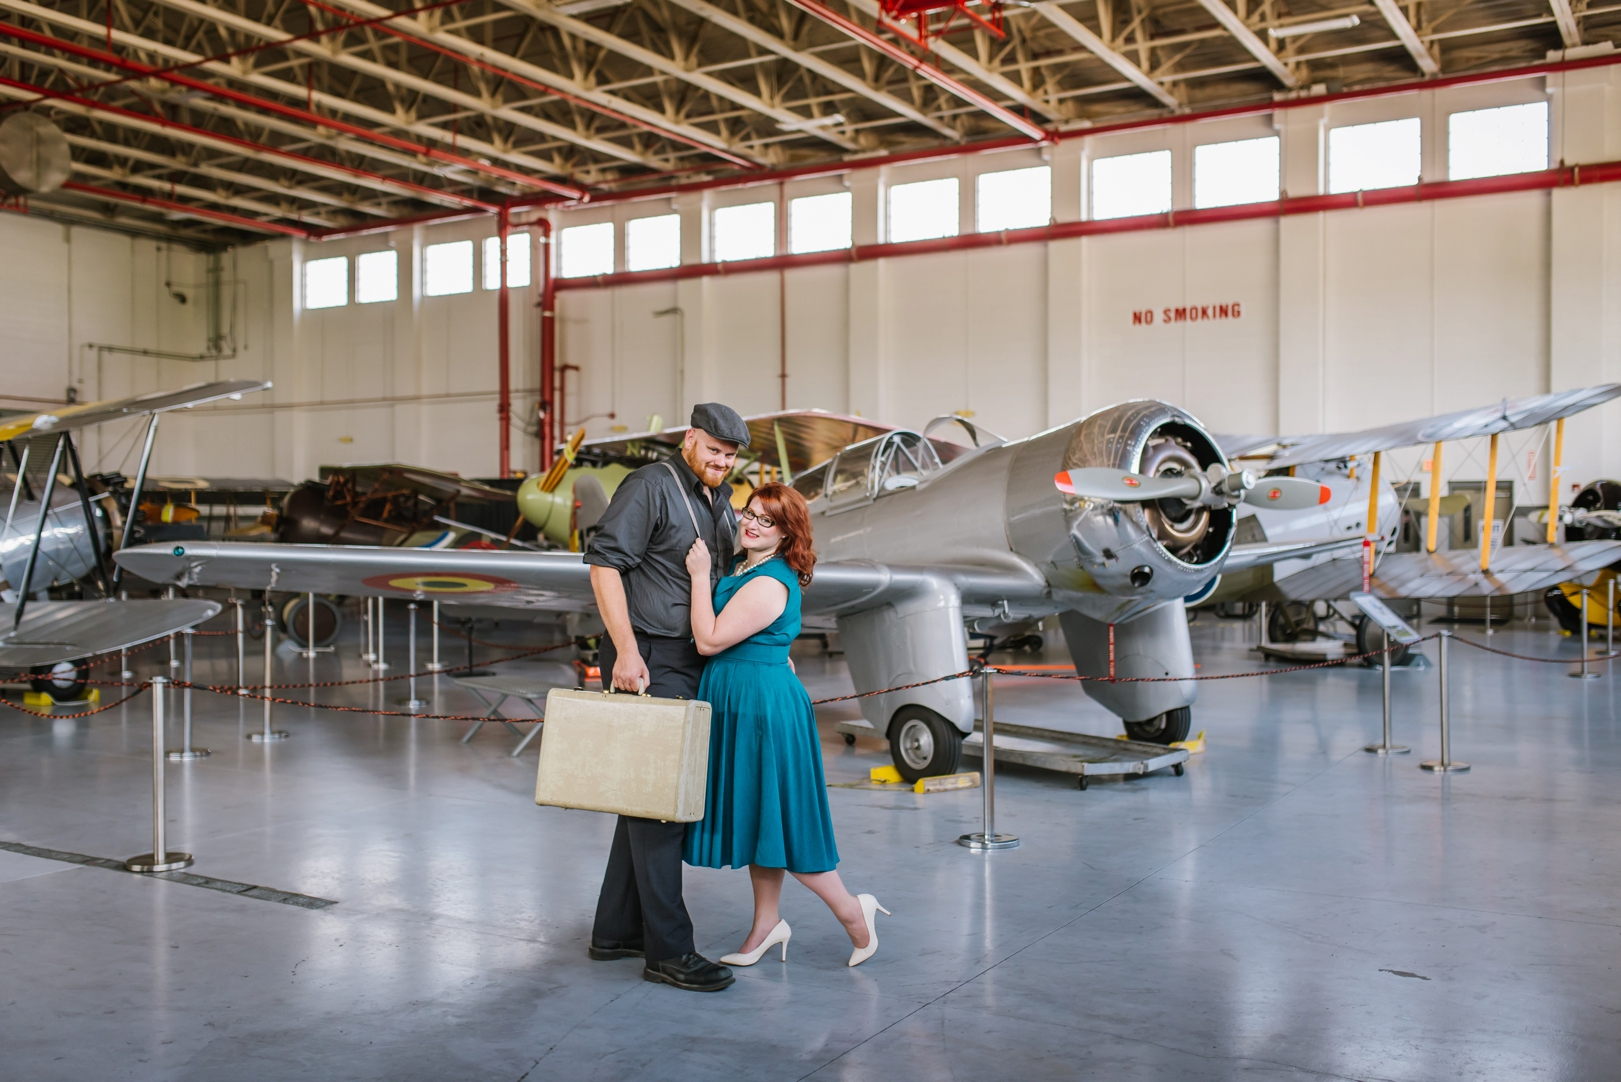 fantasy-of-flight-aviation-themed-engagement-photos-lakeland-florida_0005.jpg